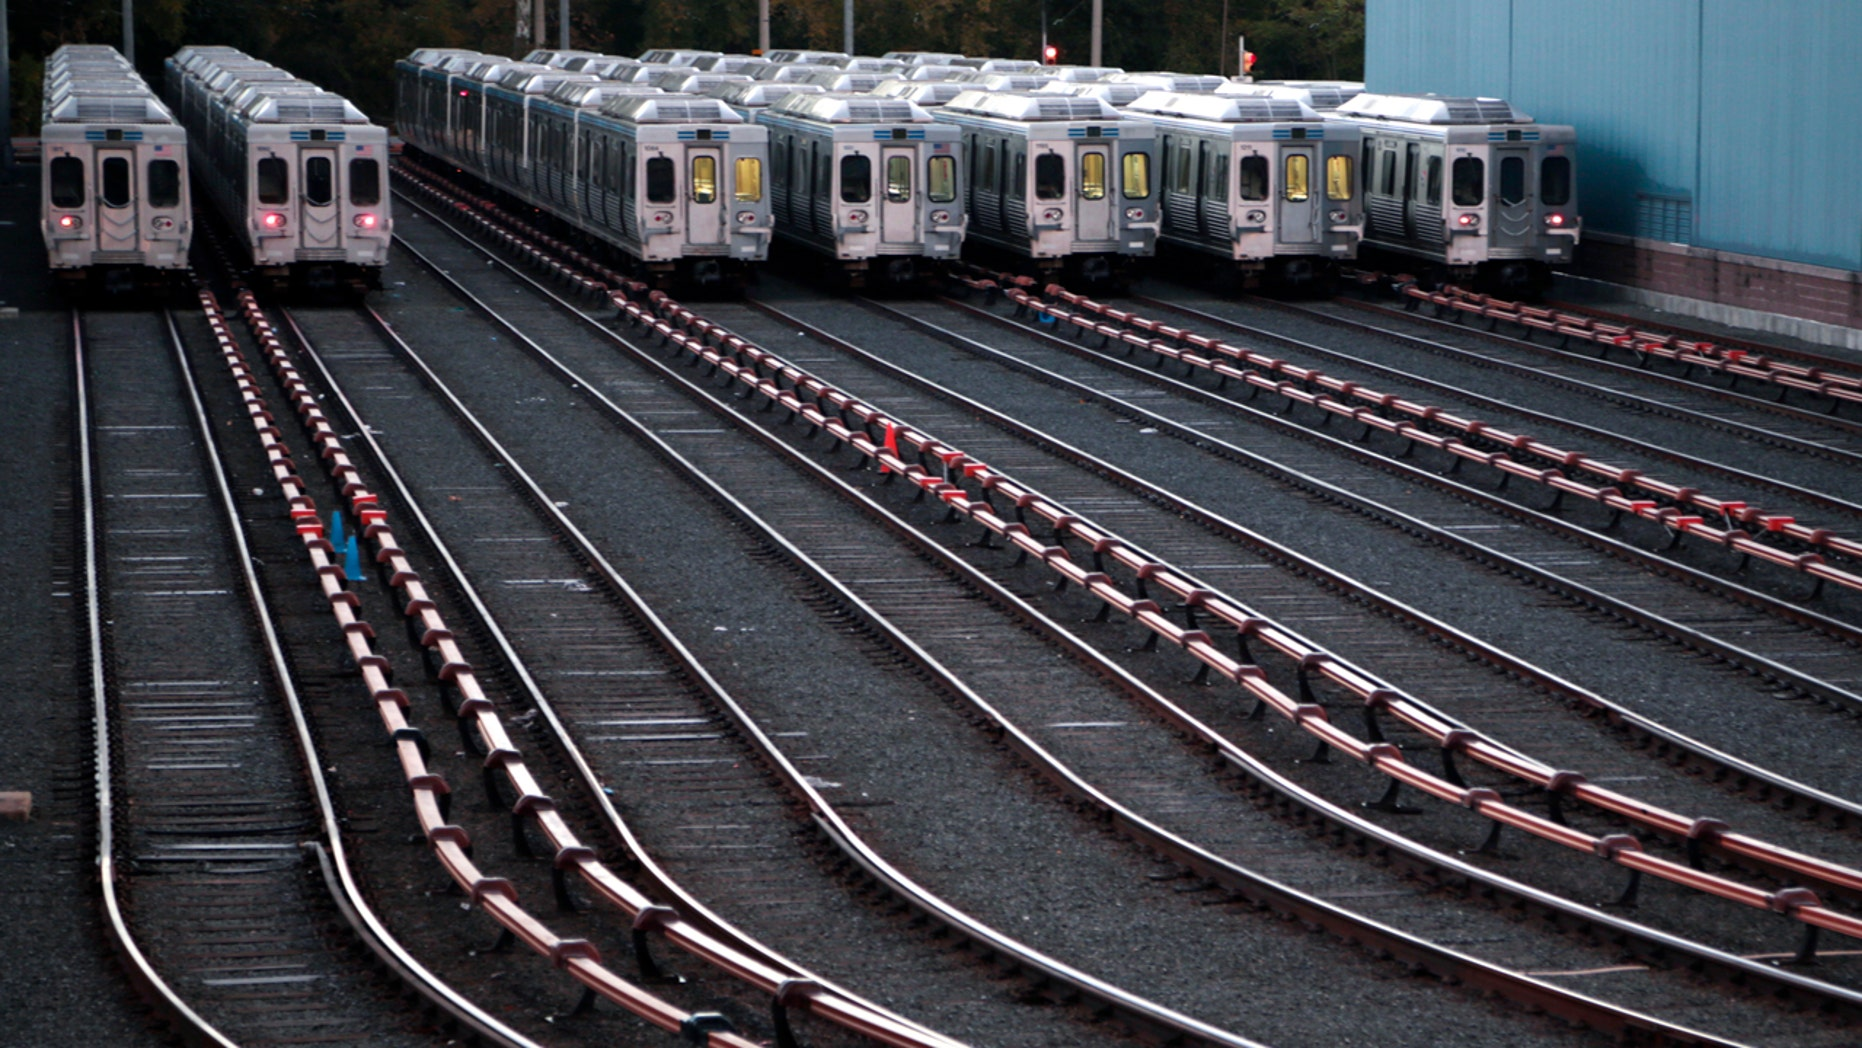 Market-Frankford line trains remain idle at a Southeastern Pennsylvania Transportation Authority (SEPTA) station Tuesday, Nov. 1, 2016 in Upper Darby, Pa., just outside Philadelphia,